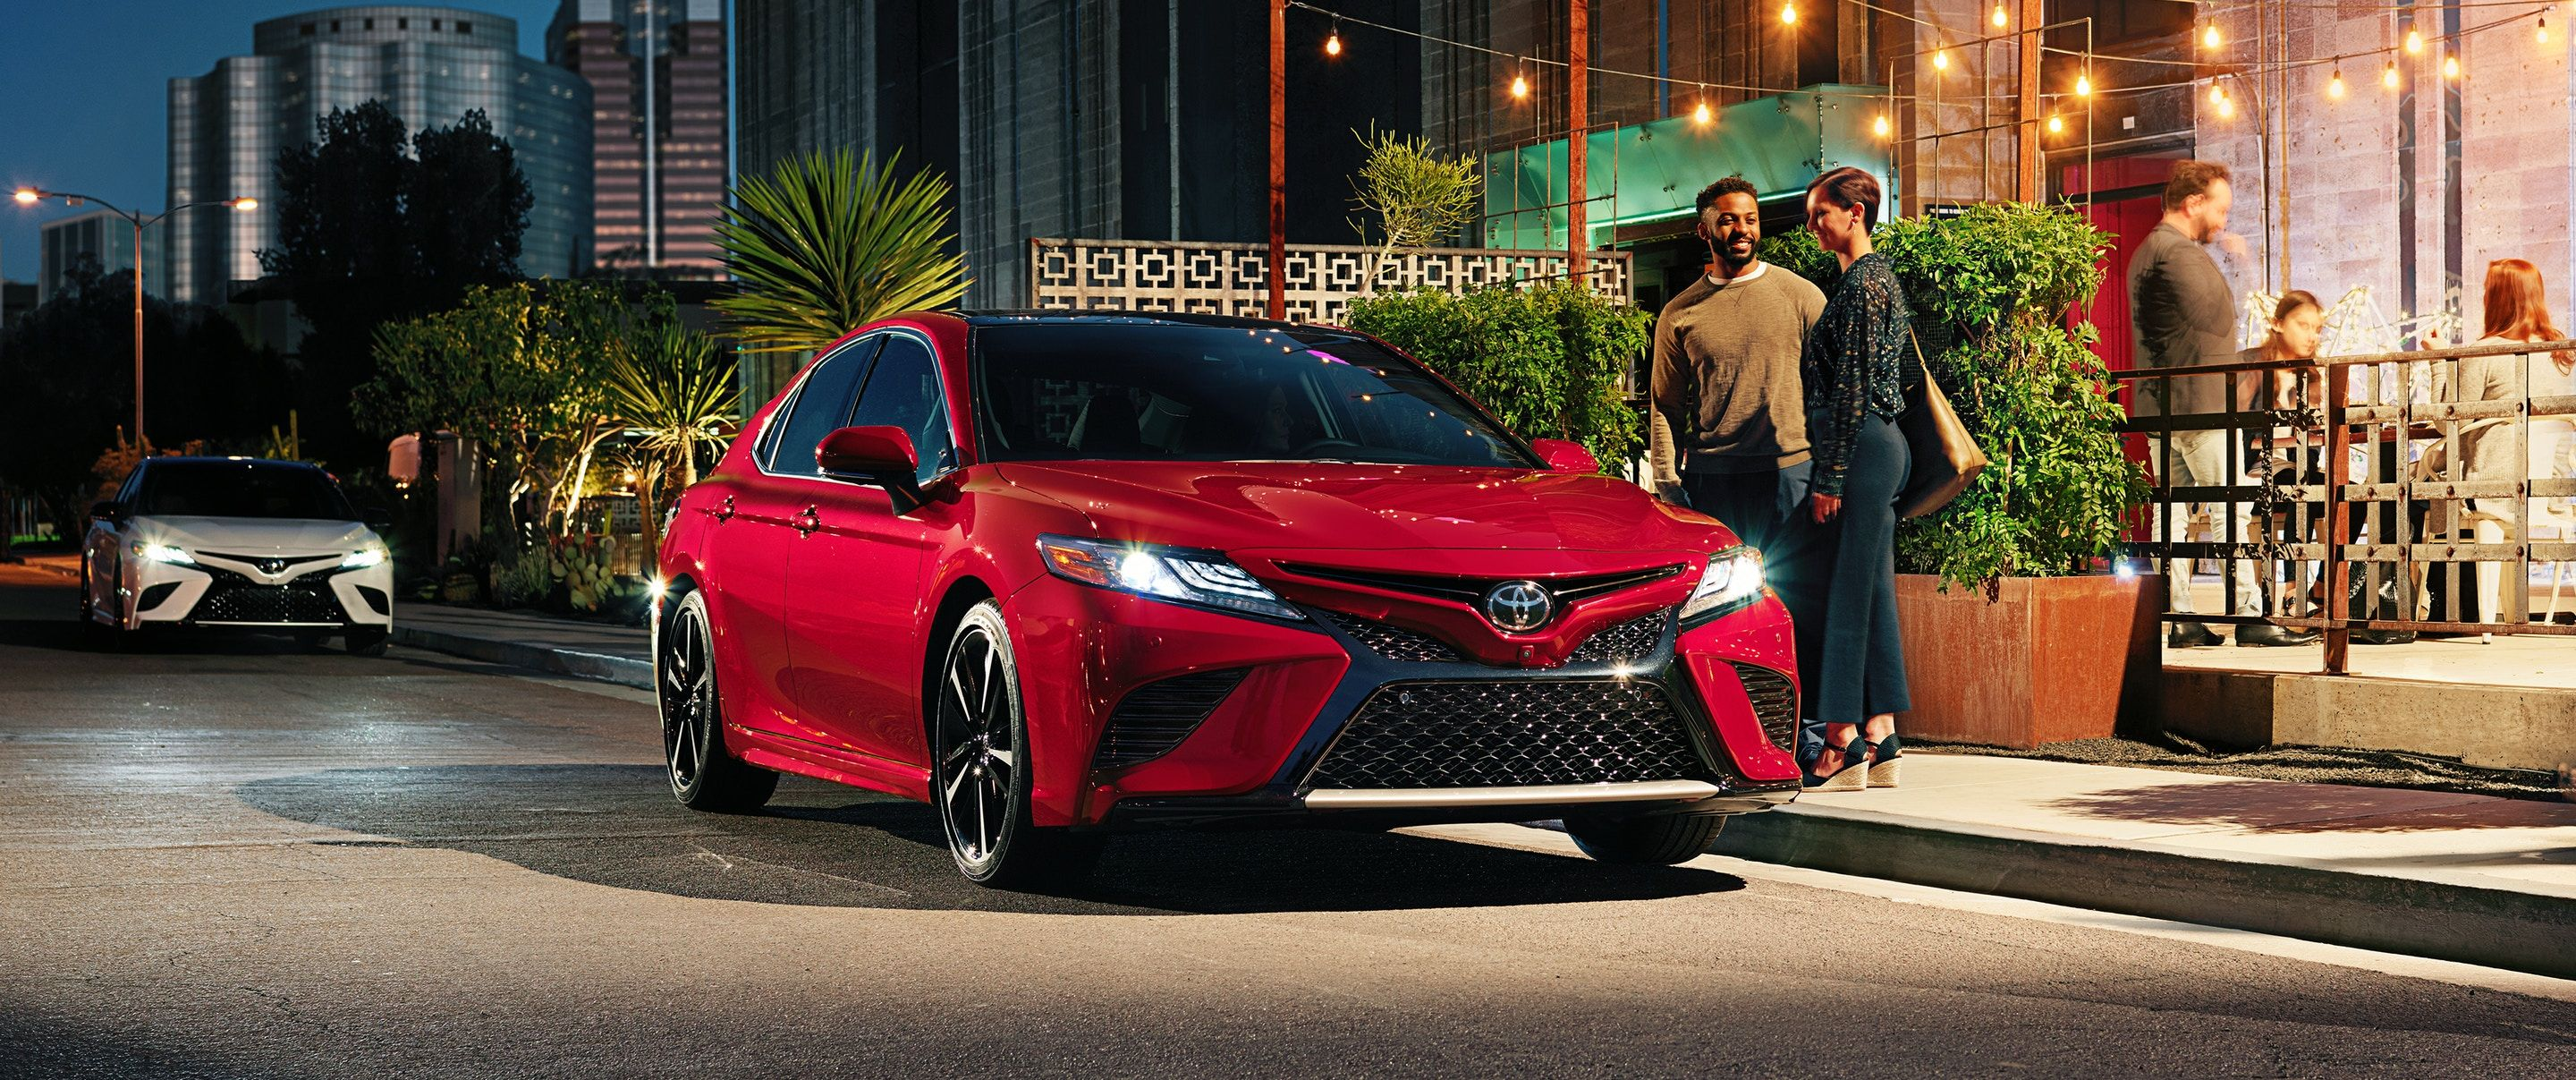 2019 Toyota Camry for Sale near Coatesville, PA